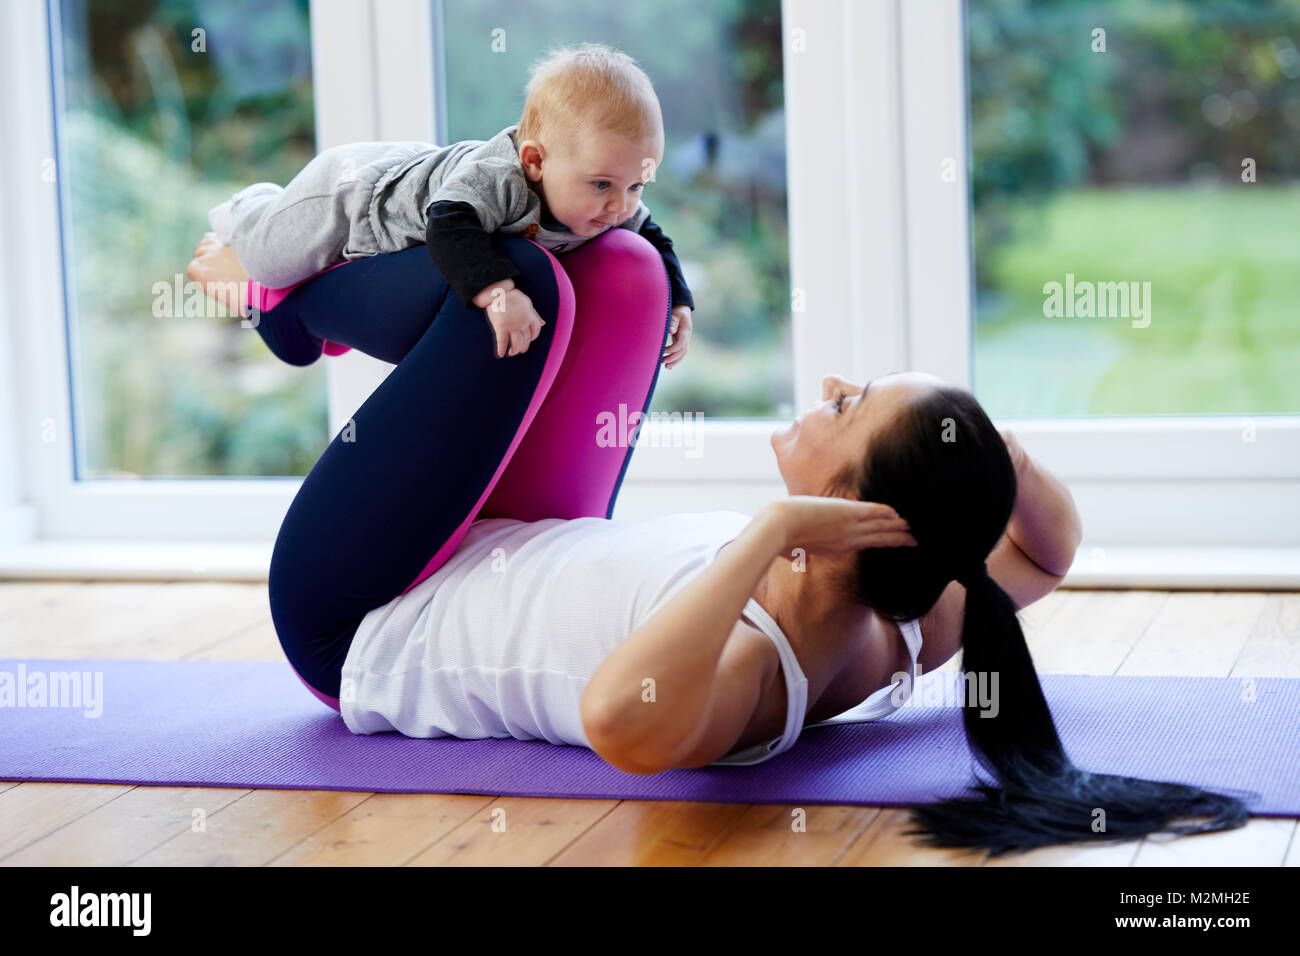 Mother exercising with her child - Stock Image